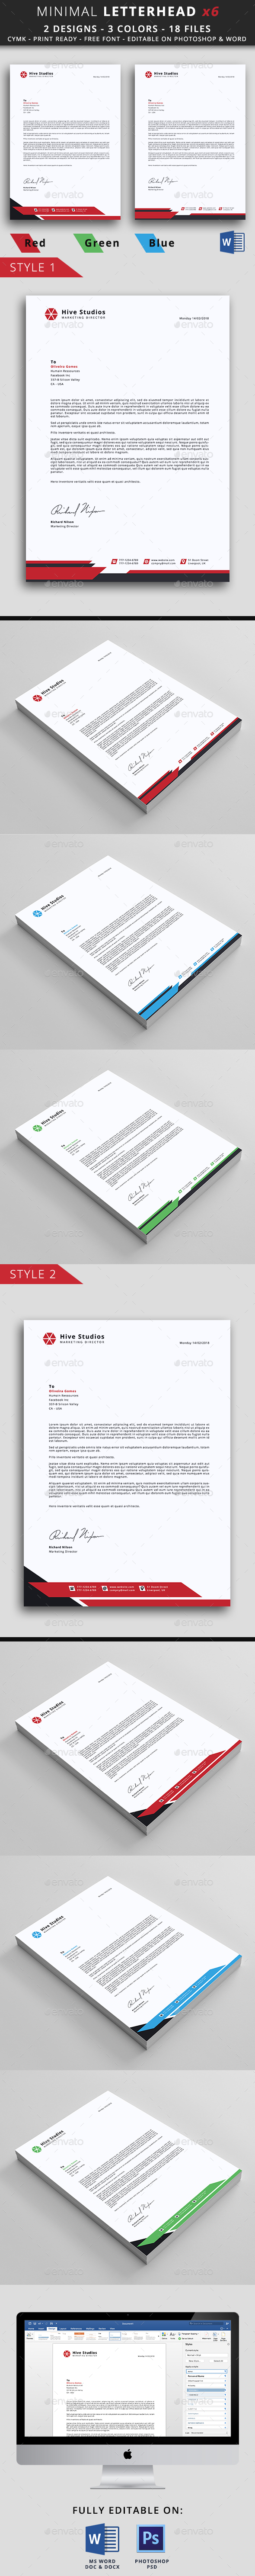 Letterhead template by mouradi graphicriver letterhead template stationery print templates spiritdancerdesigns Images